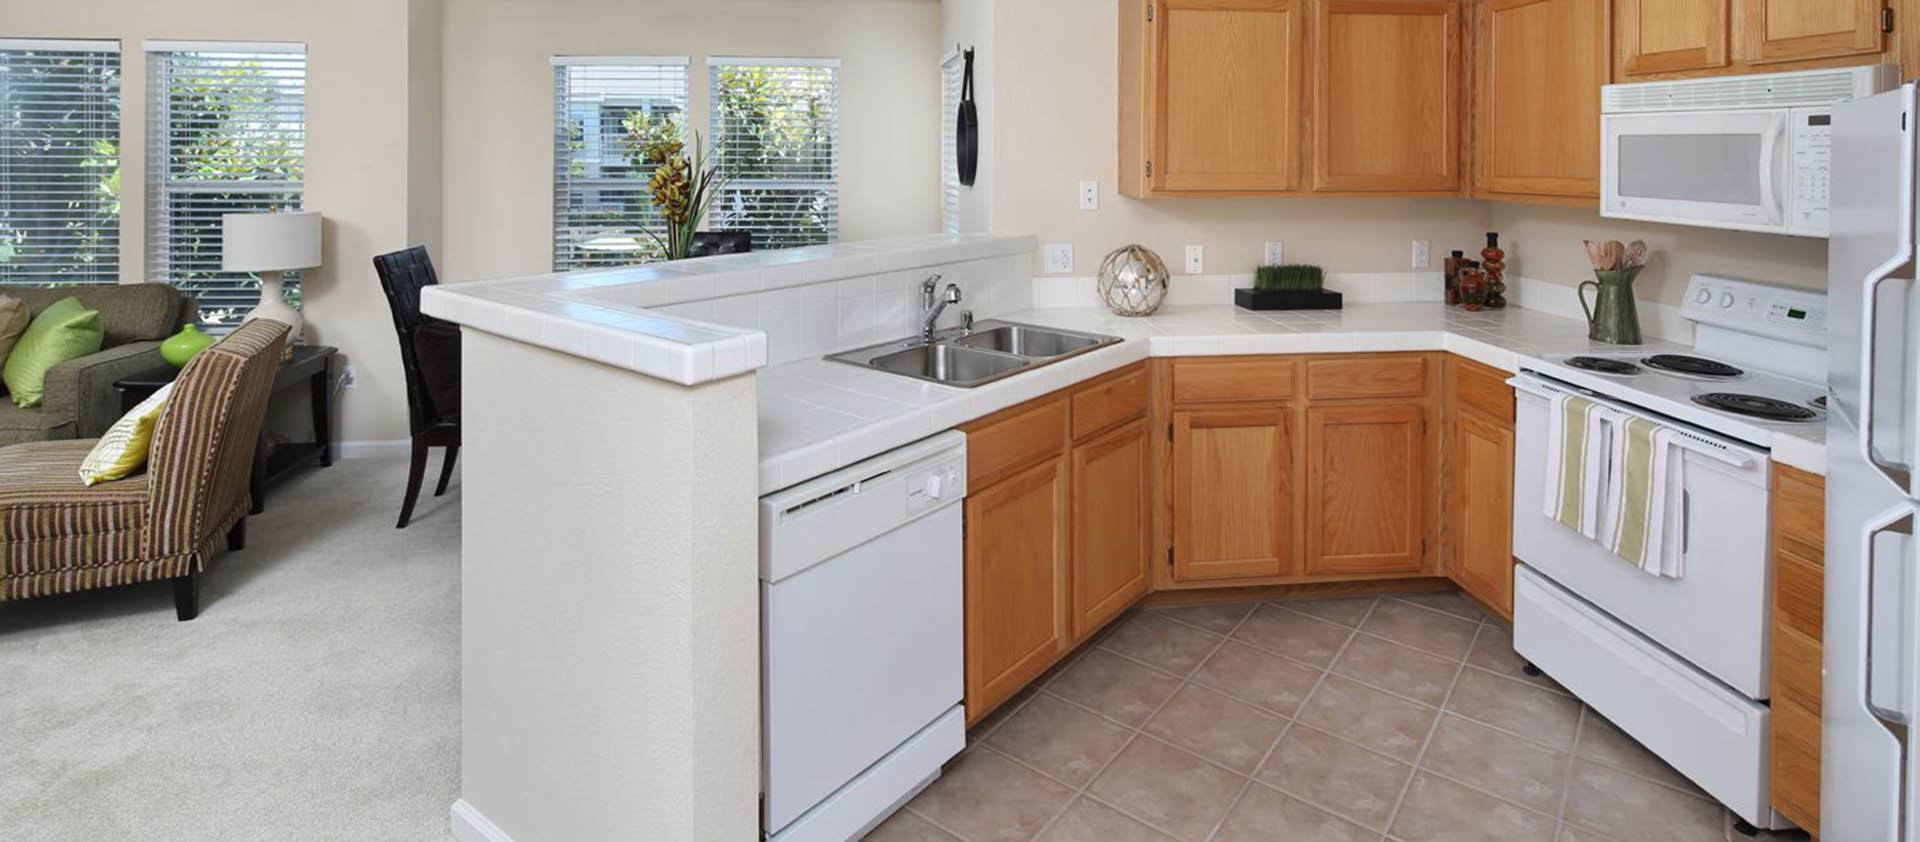 Standard Kitchen at Iron Point at Prairie Oaks in Folsom, California